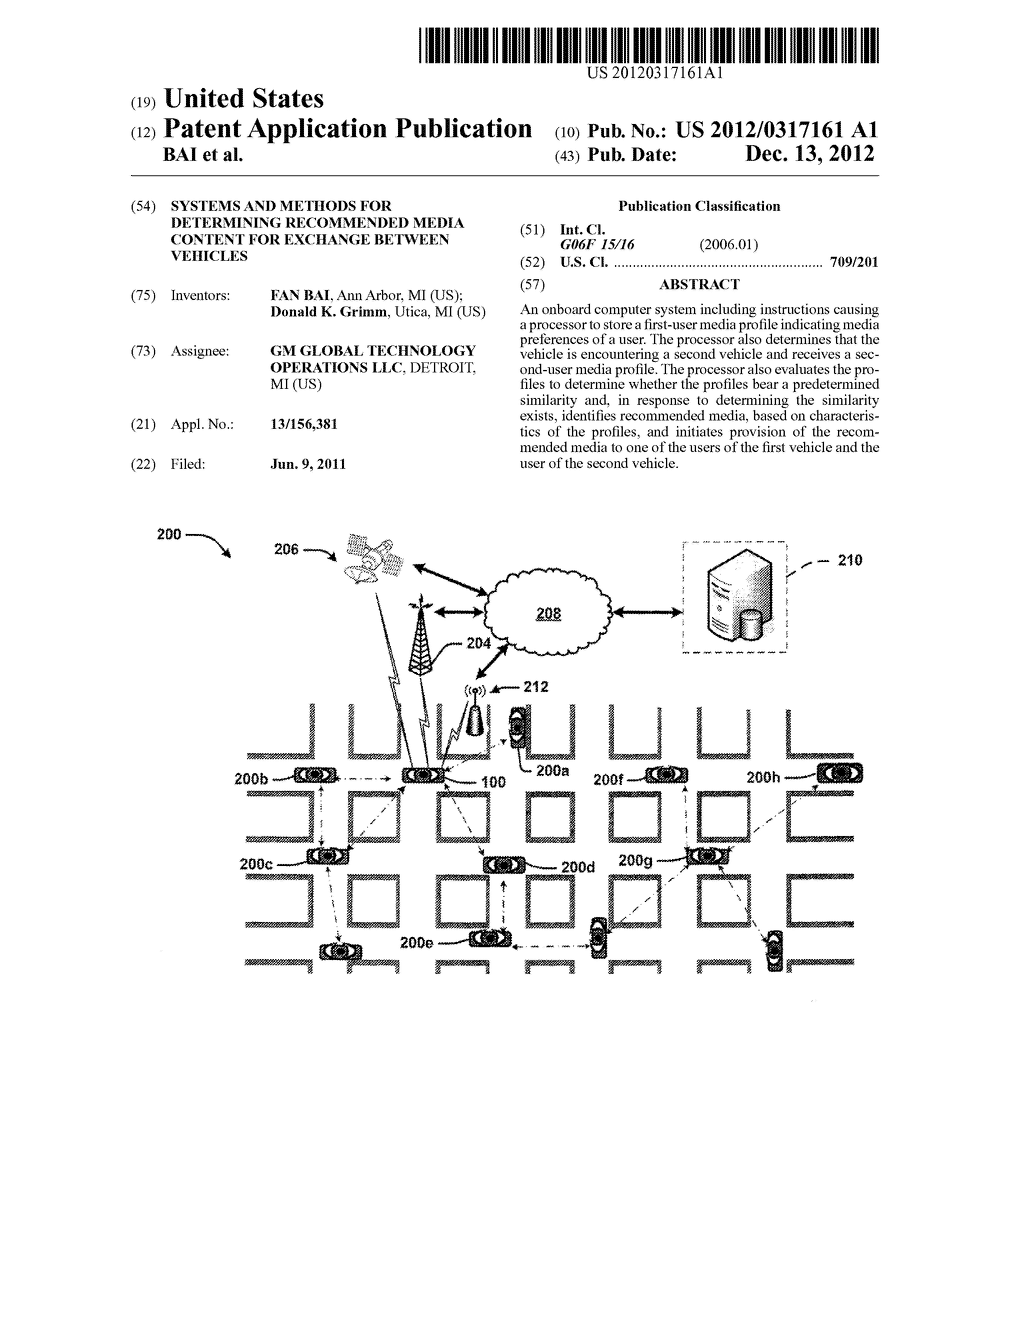 SYSTEMS AND METHODS FOR DETERMINING RECOMMENDED MEDIA CONTENT FOR EXCHANGE     BETWEEN VEHICLES - diagram, schematic, and image 01